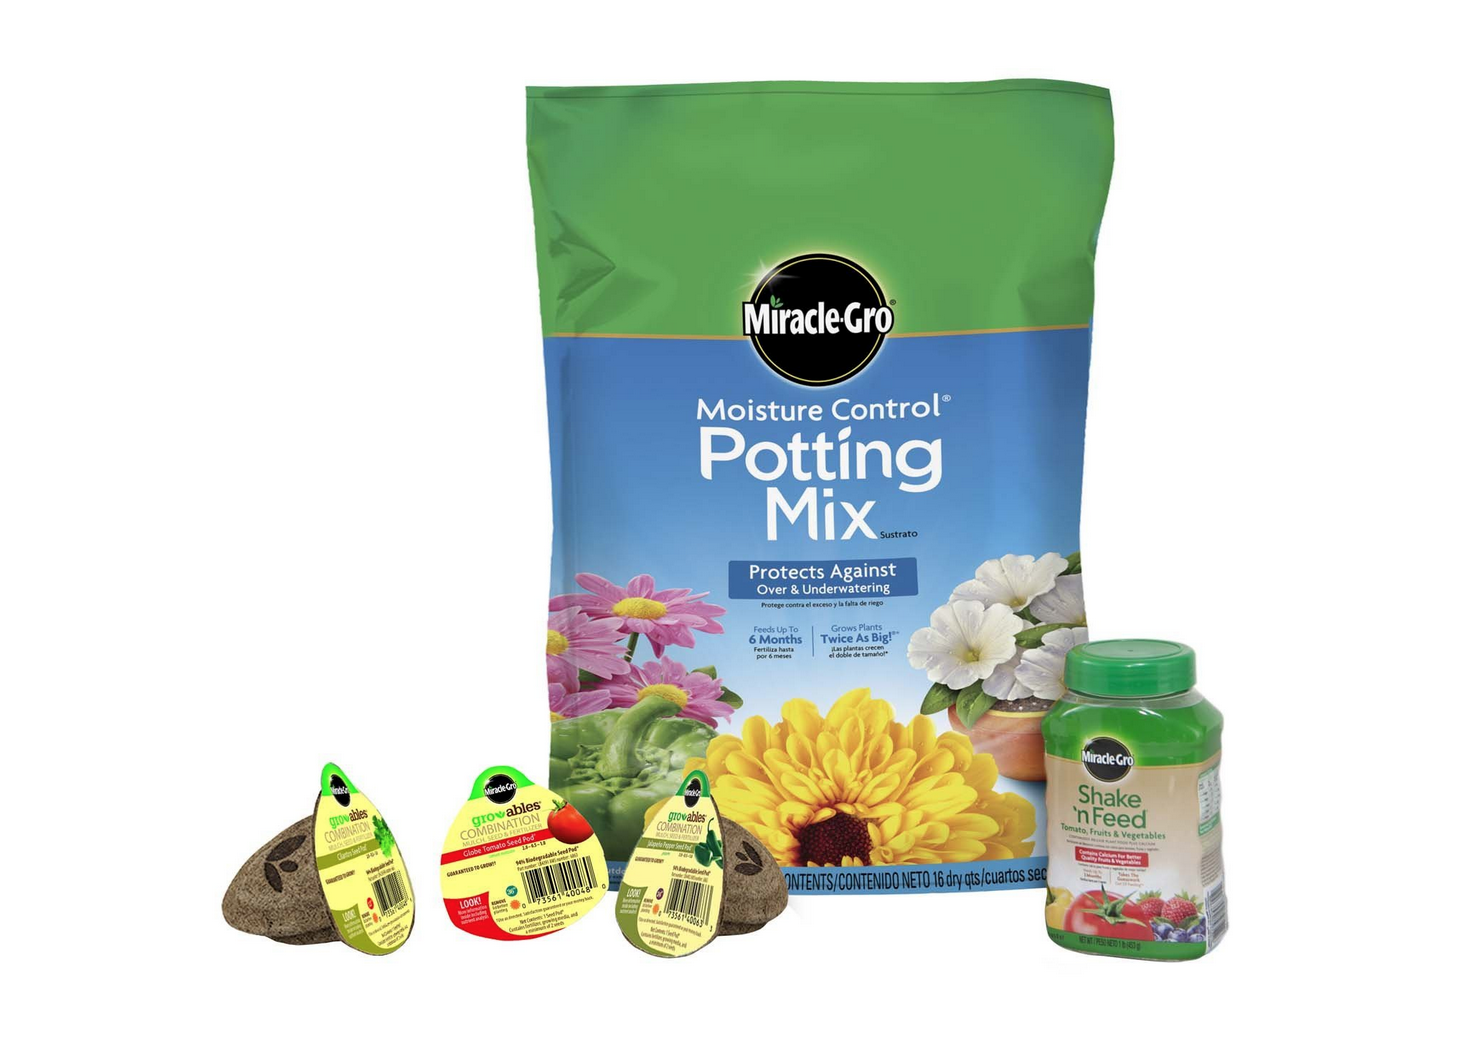 Miracle-Gro Salsa Growing Kit Only $15.99!